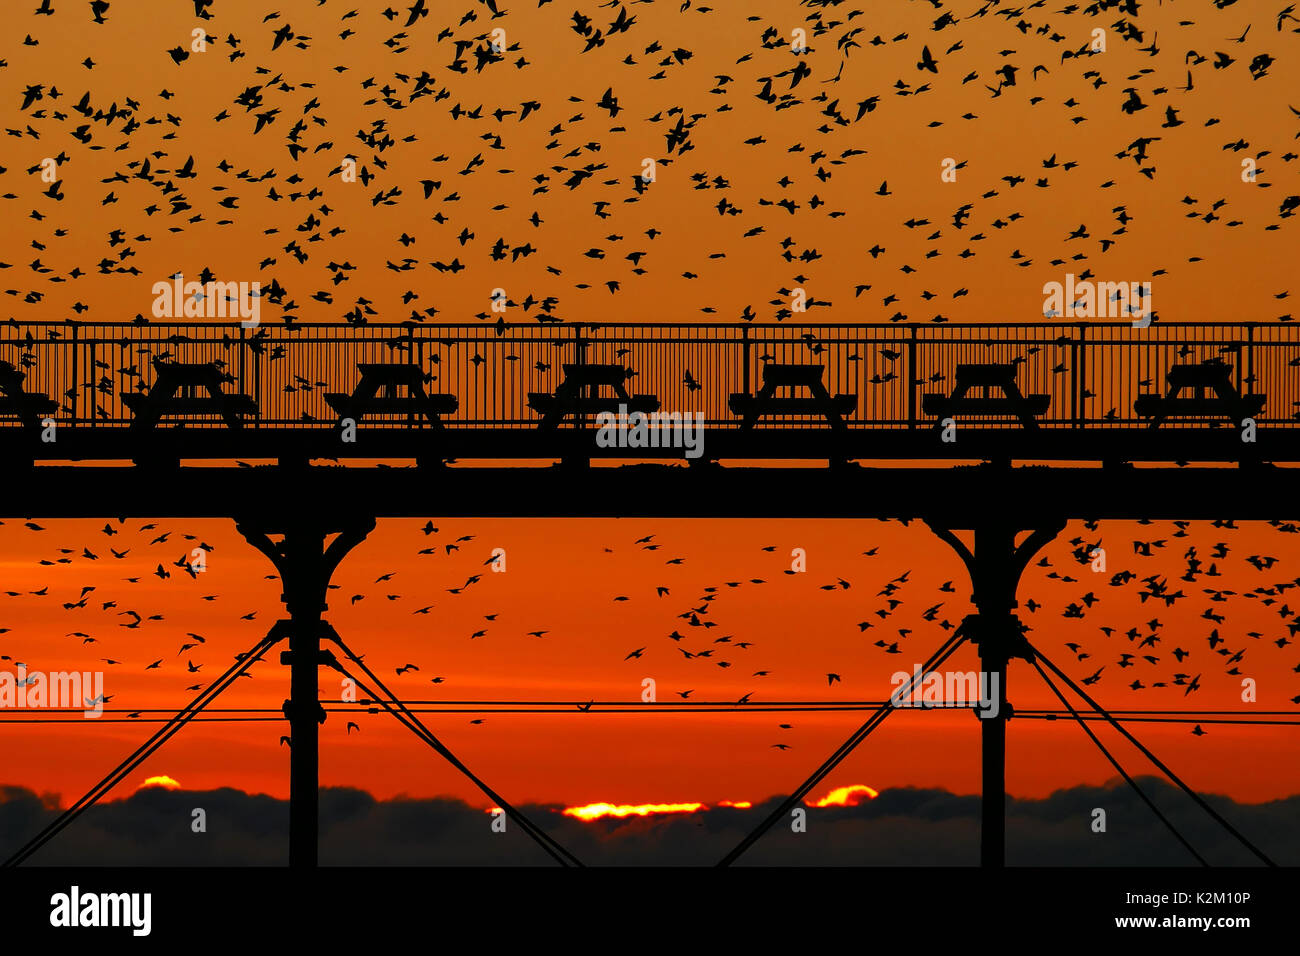 Starlings swarm around Aberystwyth's Royal Pier on a winters evening just after the sun goes down. - Stock Image